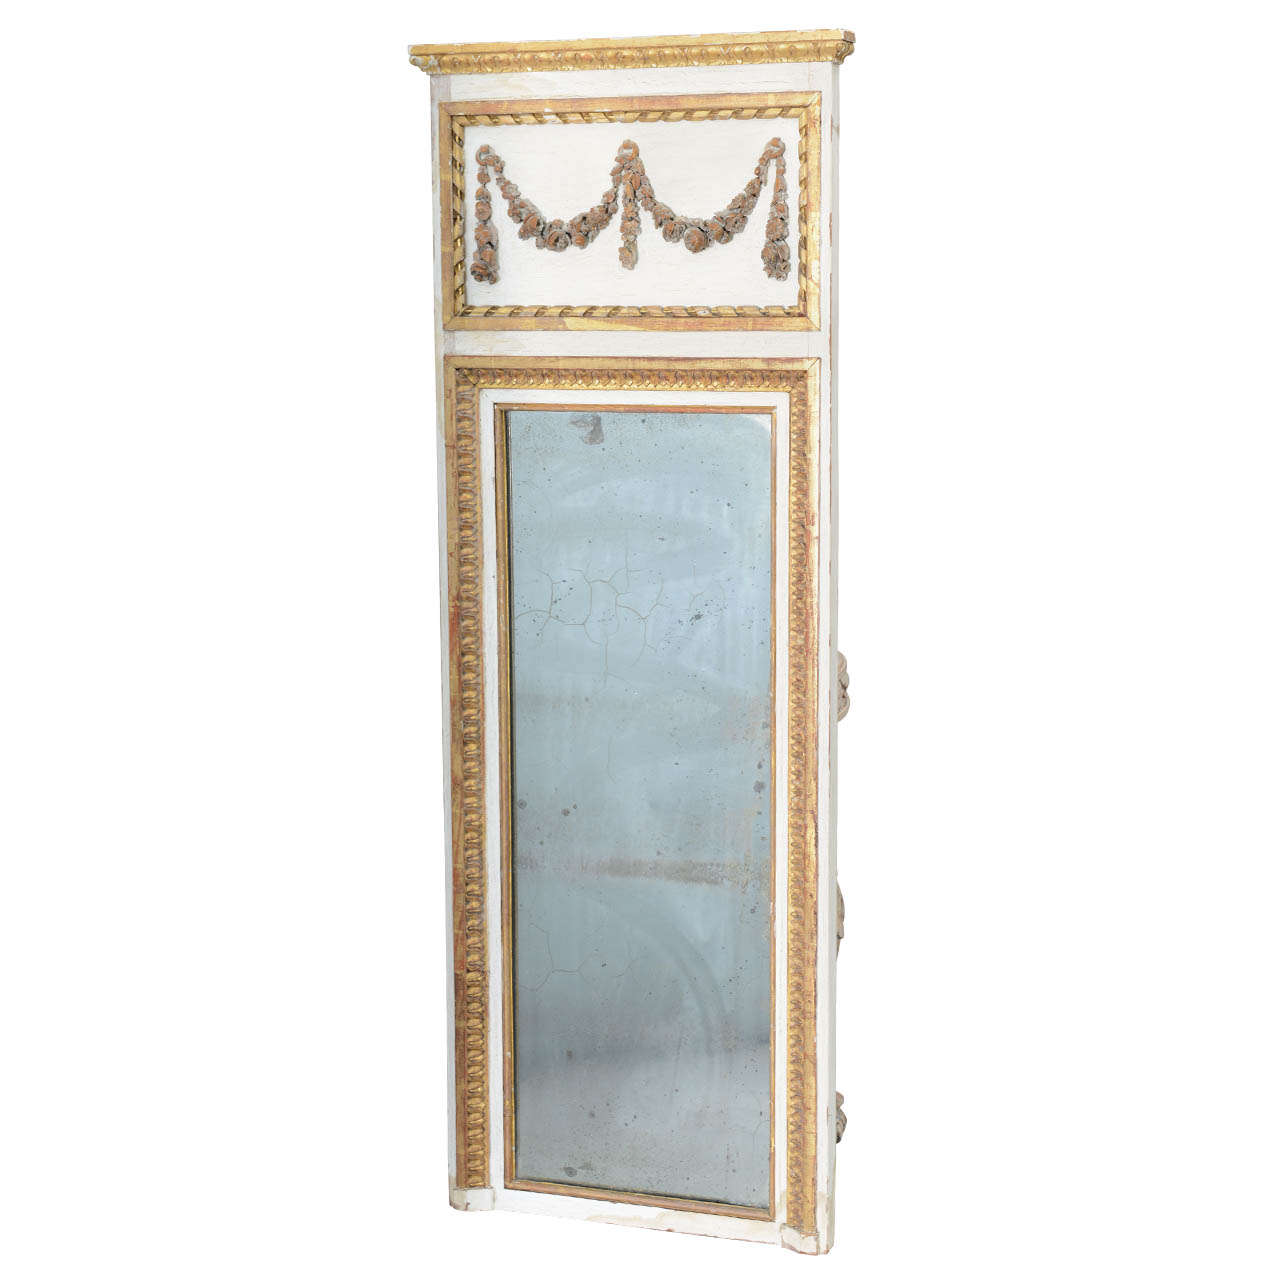 narrow 19c painted and parcel gilt french trumeau mirror for sale at 1stdibs. Black Bedroom Furniture Sets. Home Design Ideas